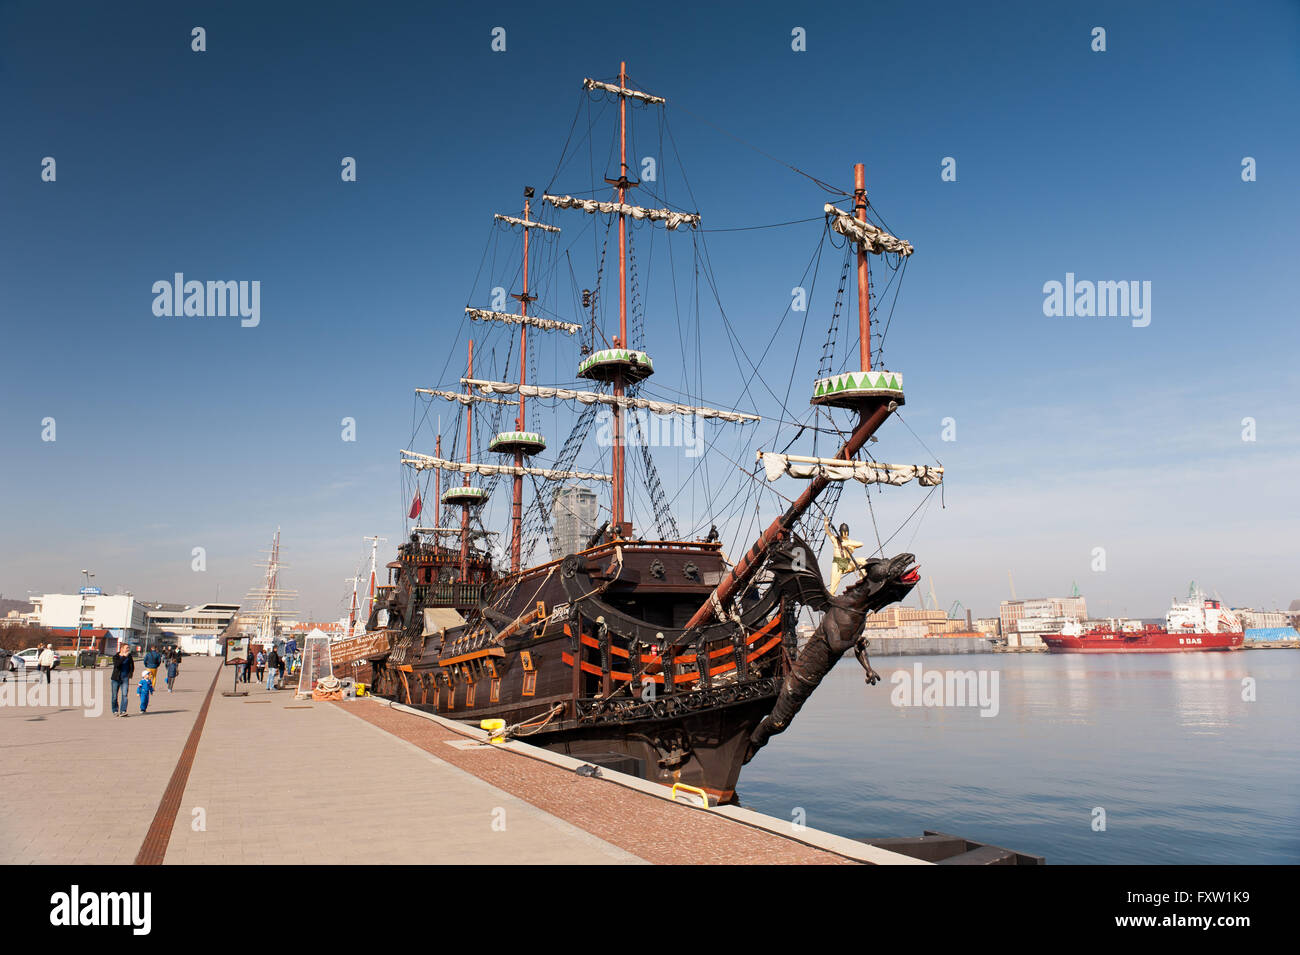 Dragon vessel prow with bowsprit in Gdynia, Poland, Europe, Baltic Sea, passenger cruise ship looks like XVII century - Stock Image